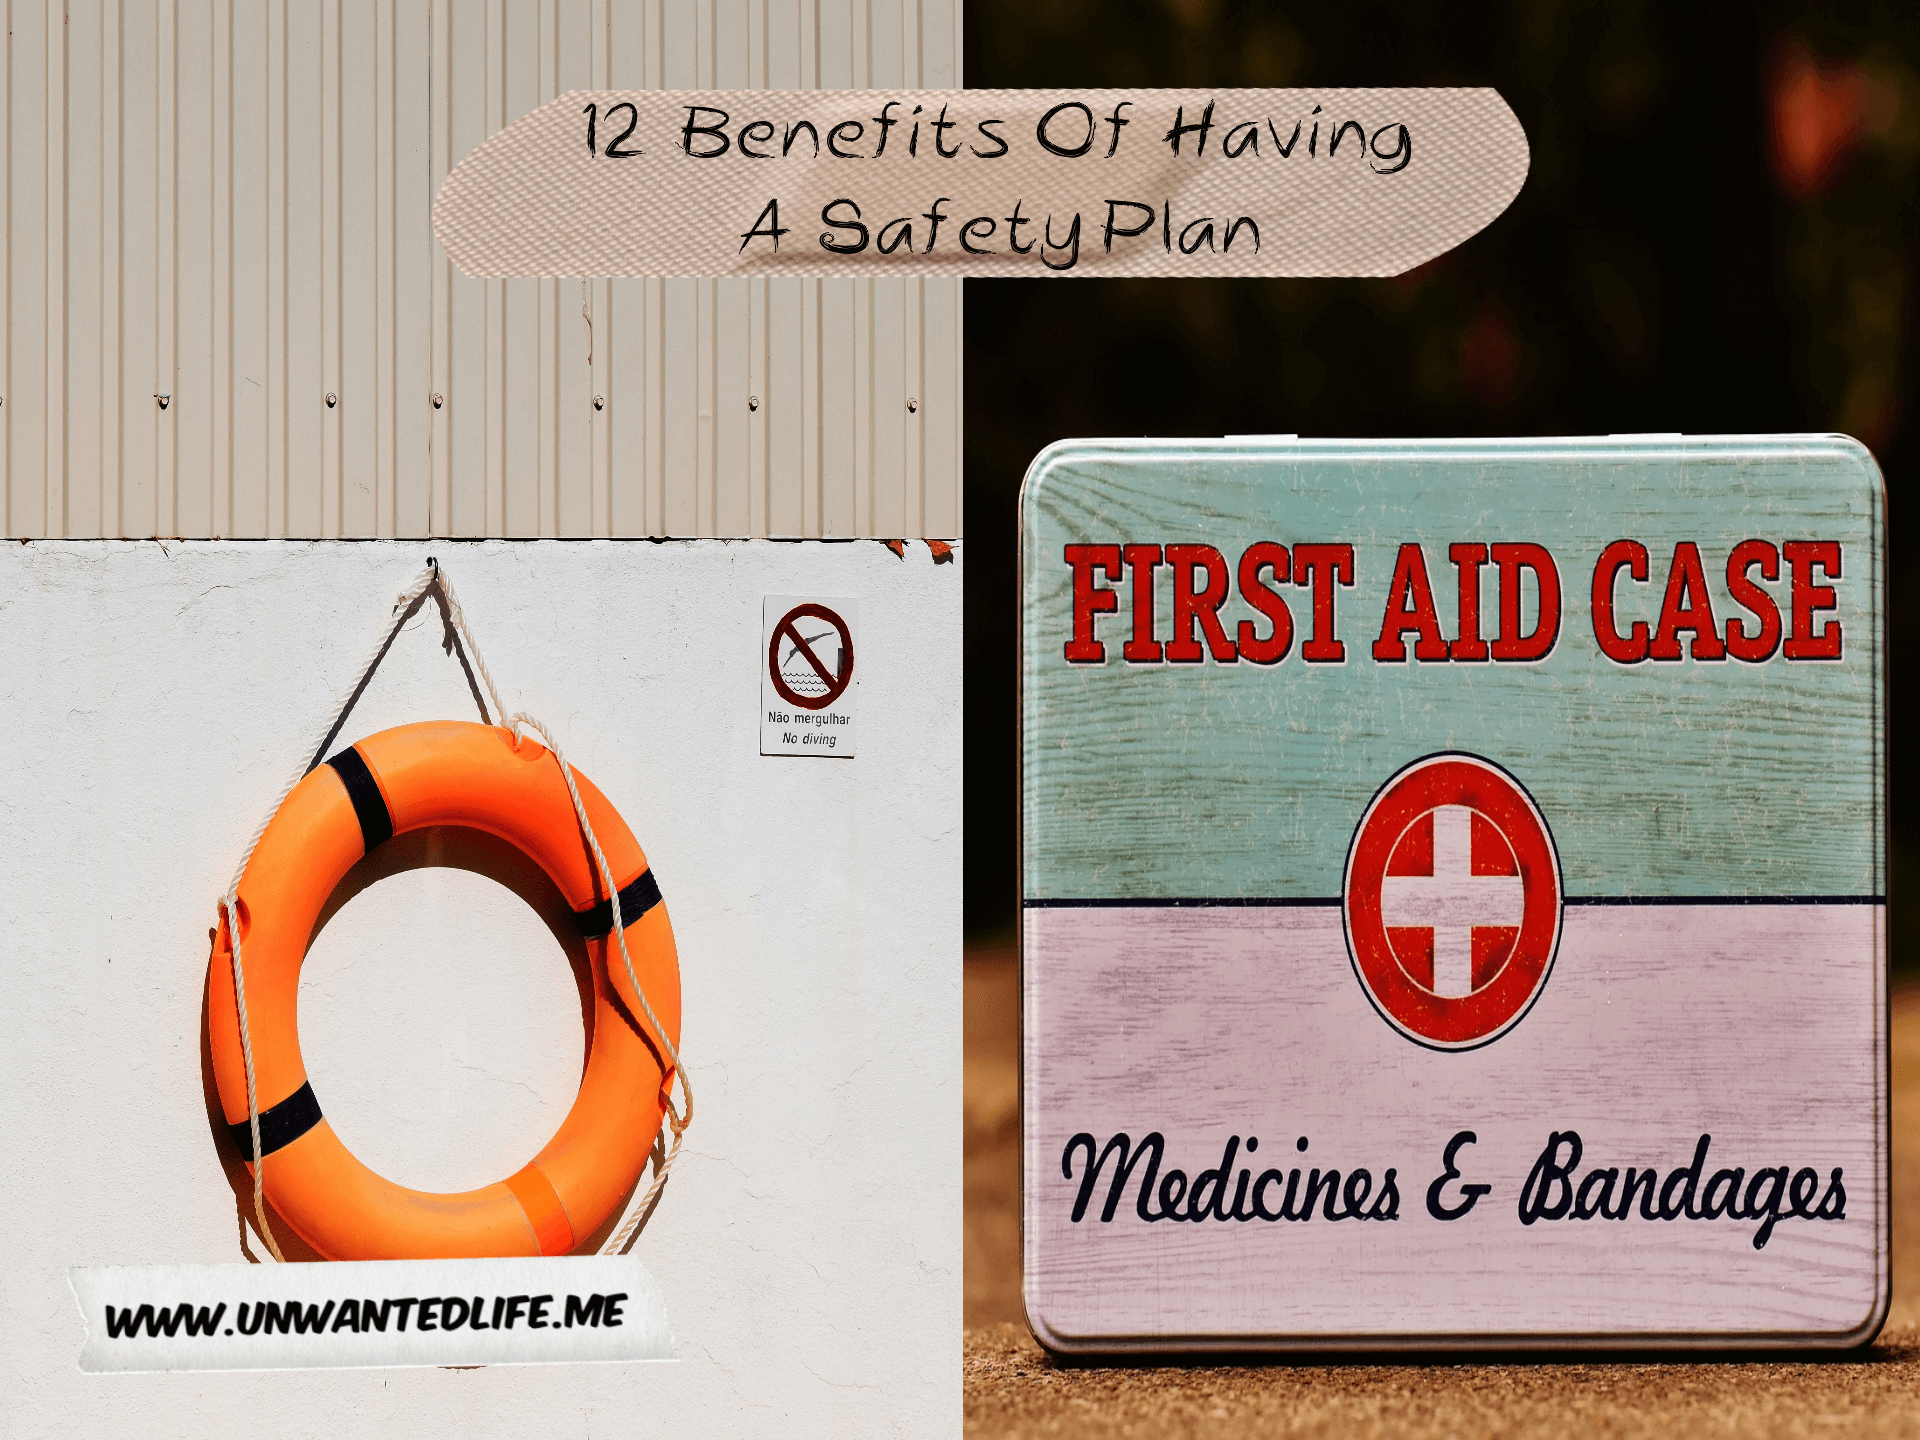 A picture split in two down the middle with the left image of a lifebuoy and the right image of a metal first aid kit to represent the topic of the article - 12 Benefits Of Having A Safety Plan